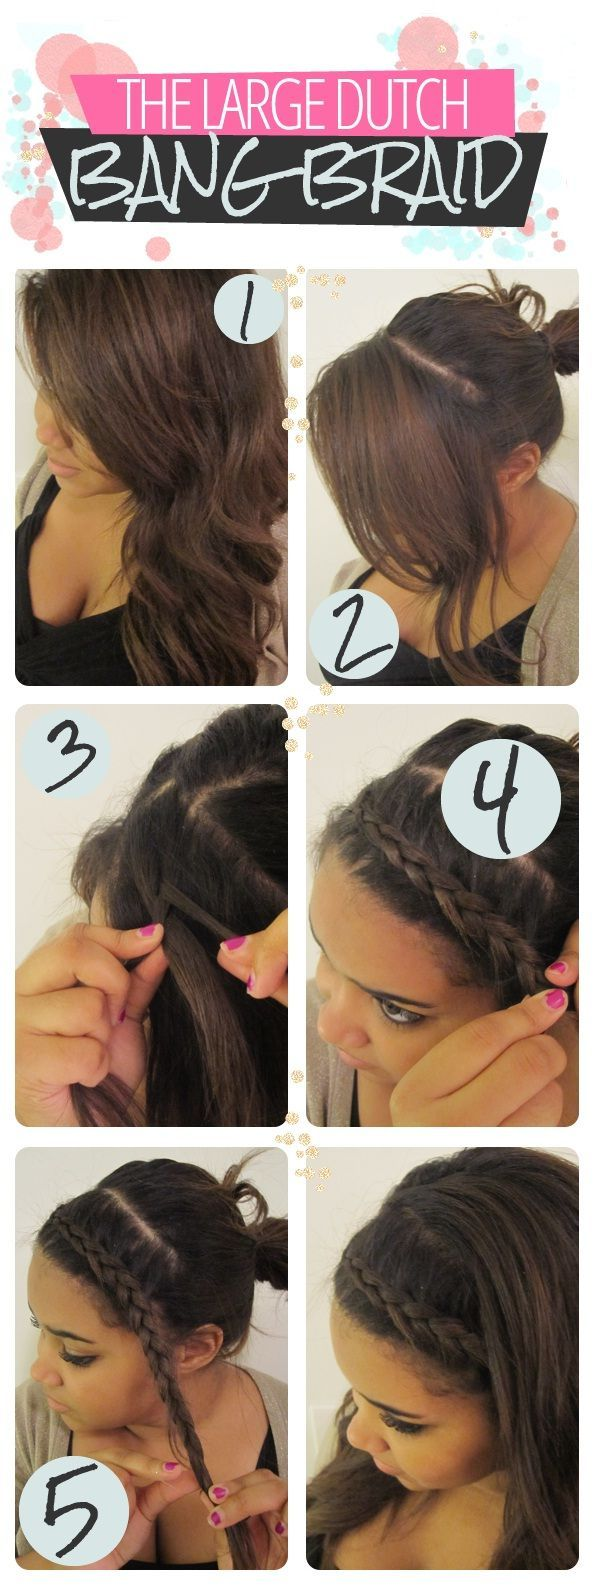 Easy ways to style your bangs pinterest hair clay bangs and braid your bangs solutioingenieria Images